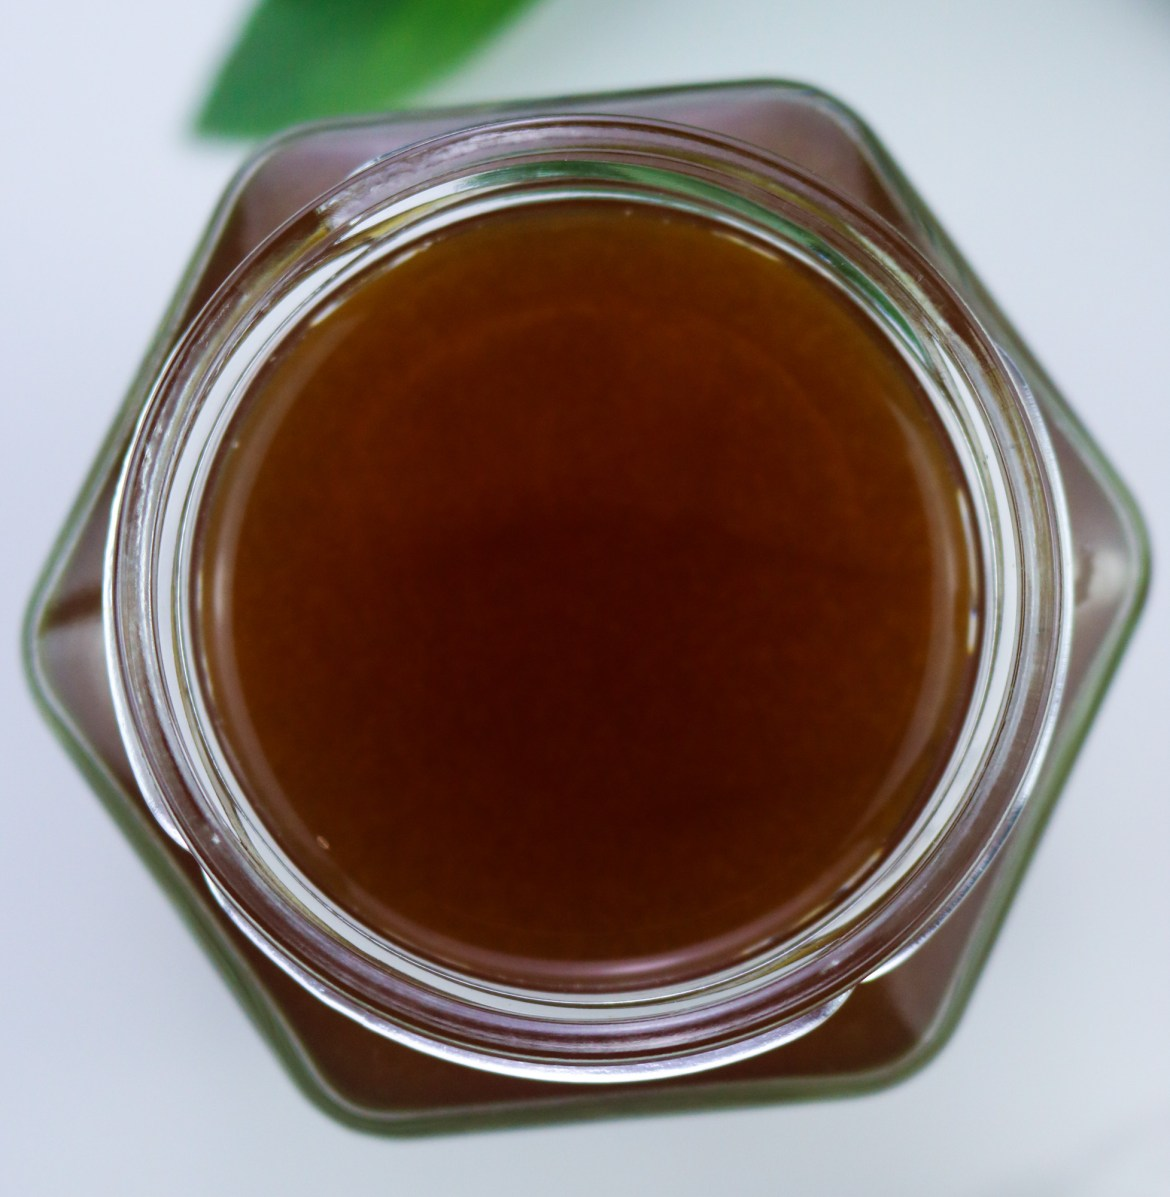 vegan fish sauce in an hexagonal glass jar